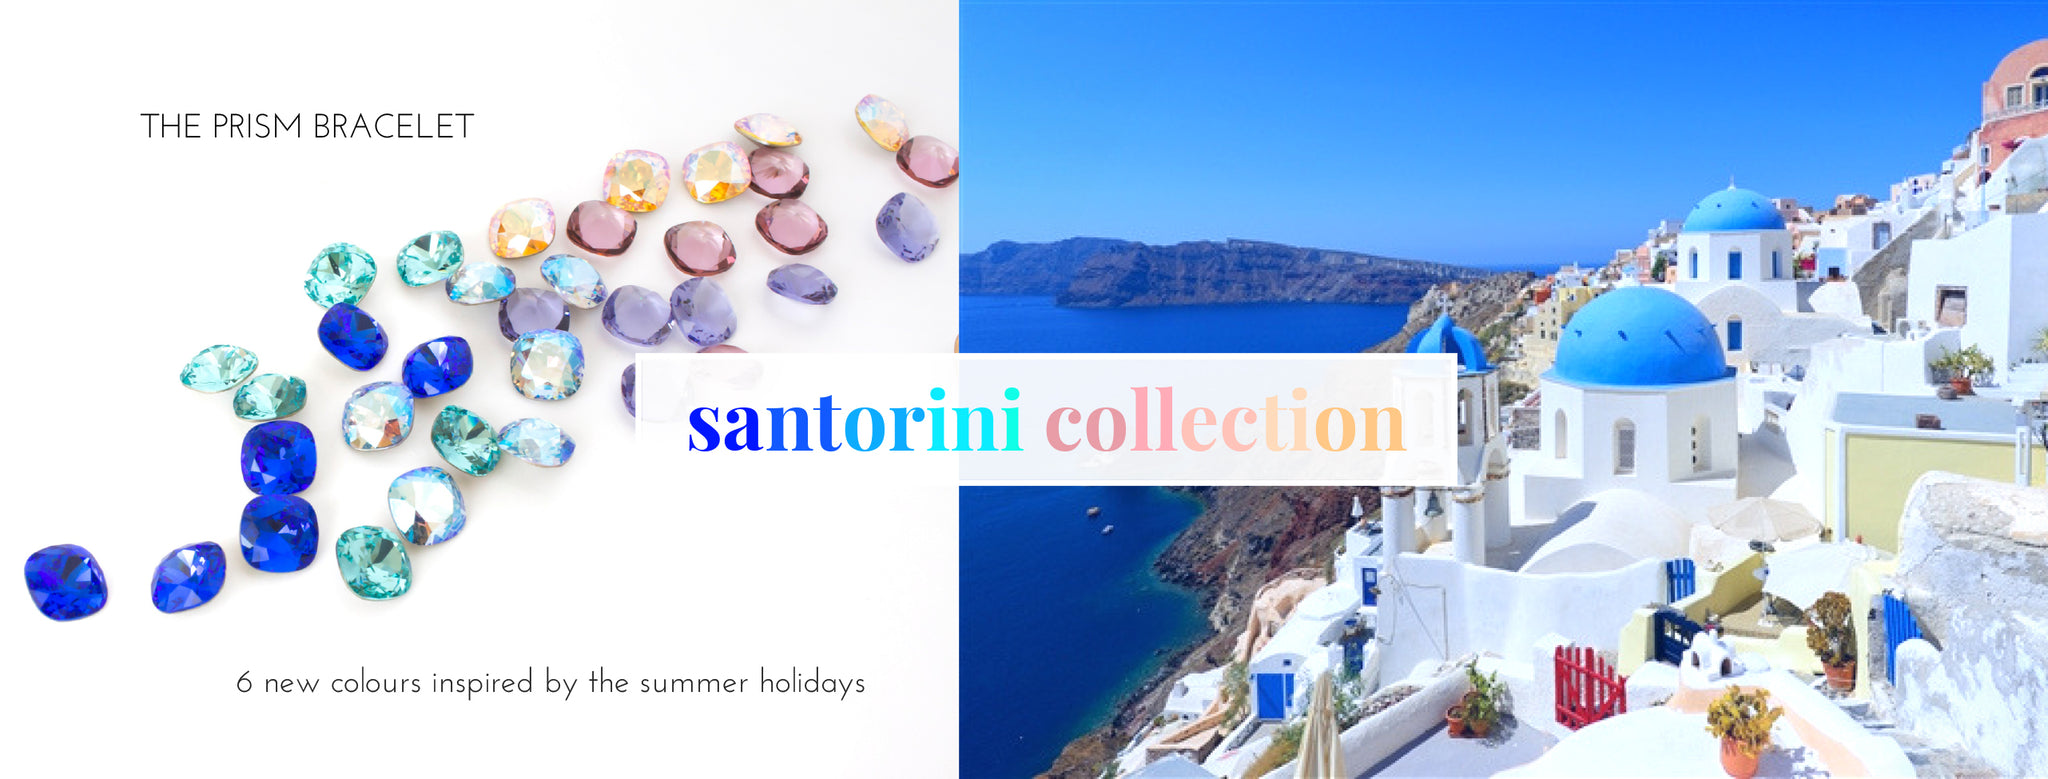 Swarovski Crystal Prism Bracelet Santorini Collection. International Shipping